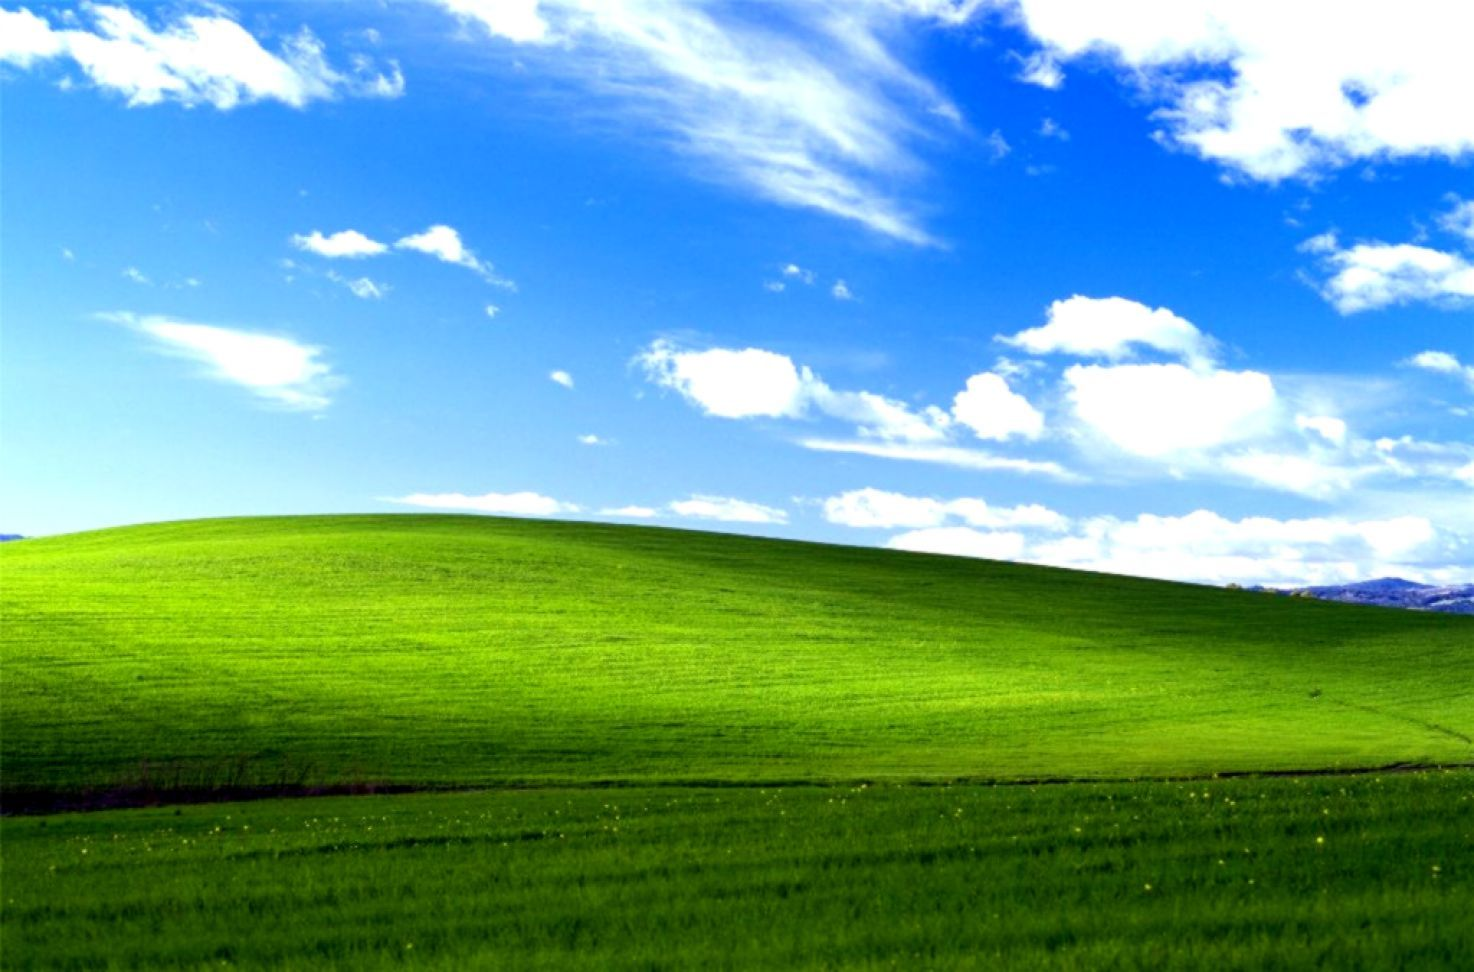 Windows 95 Wallpapers - Top Free Windows 95 Backgrounds ...